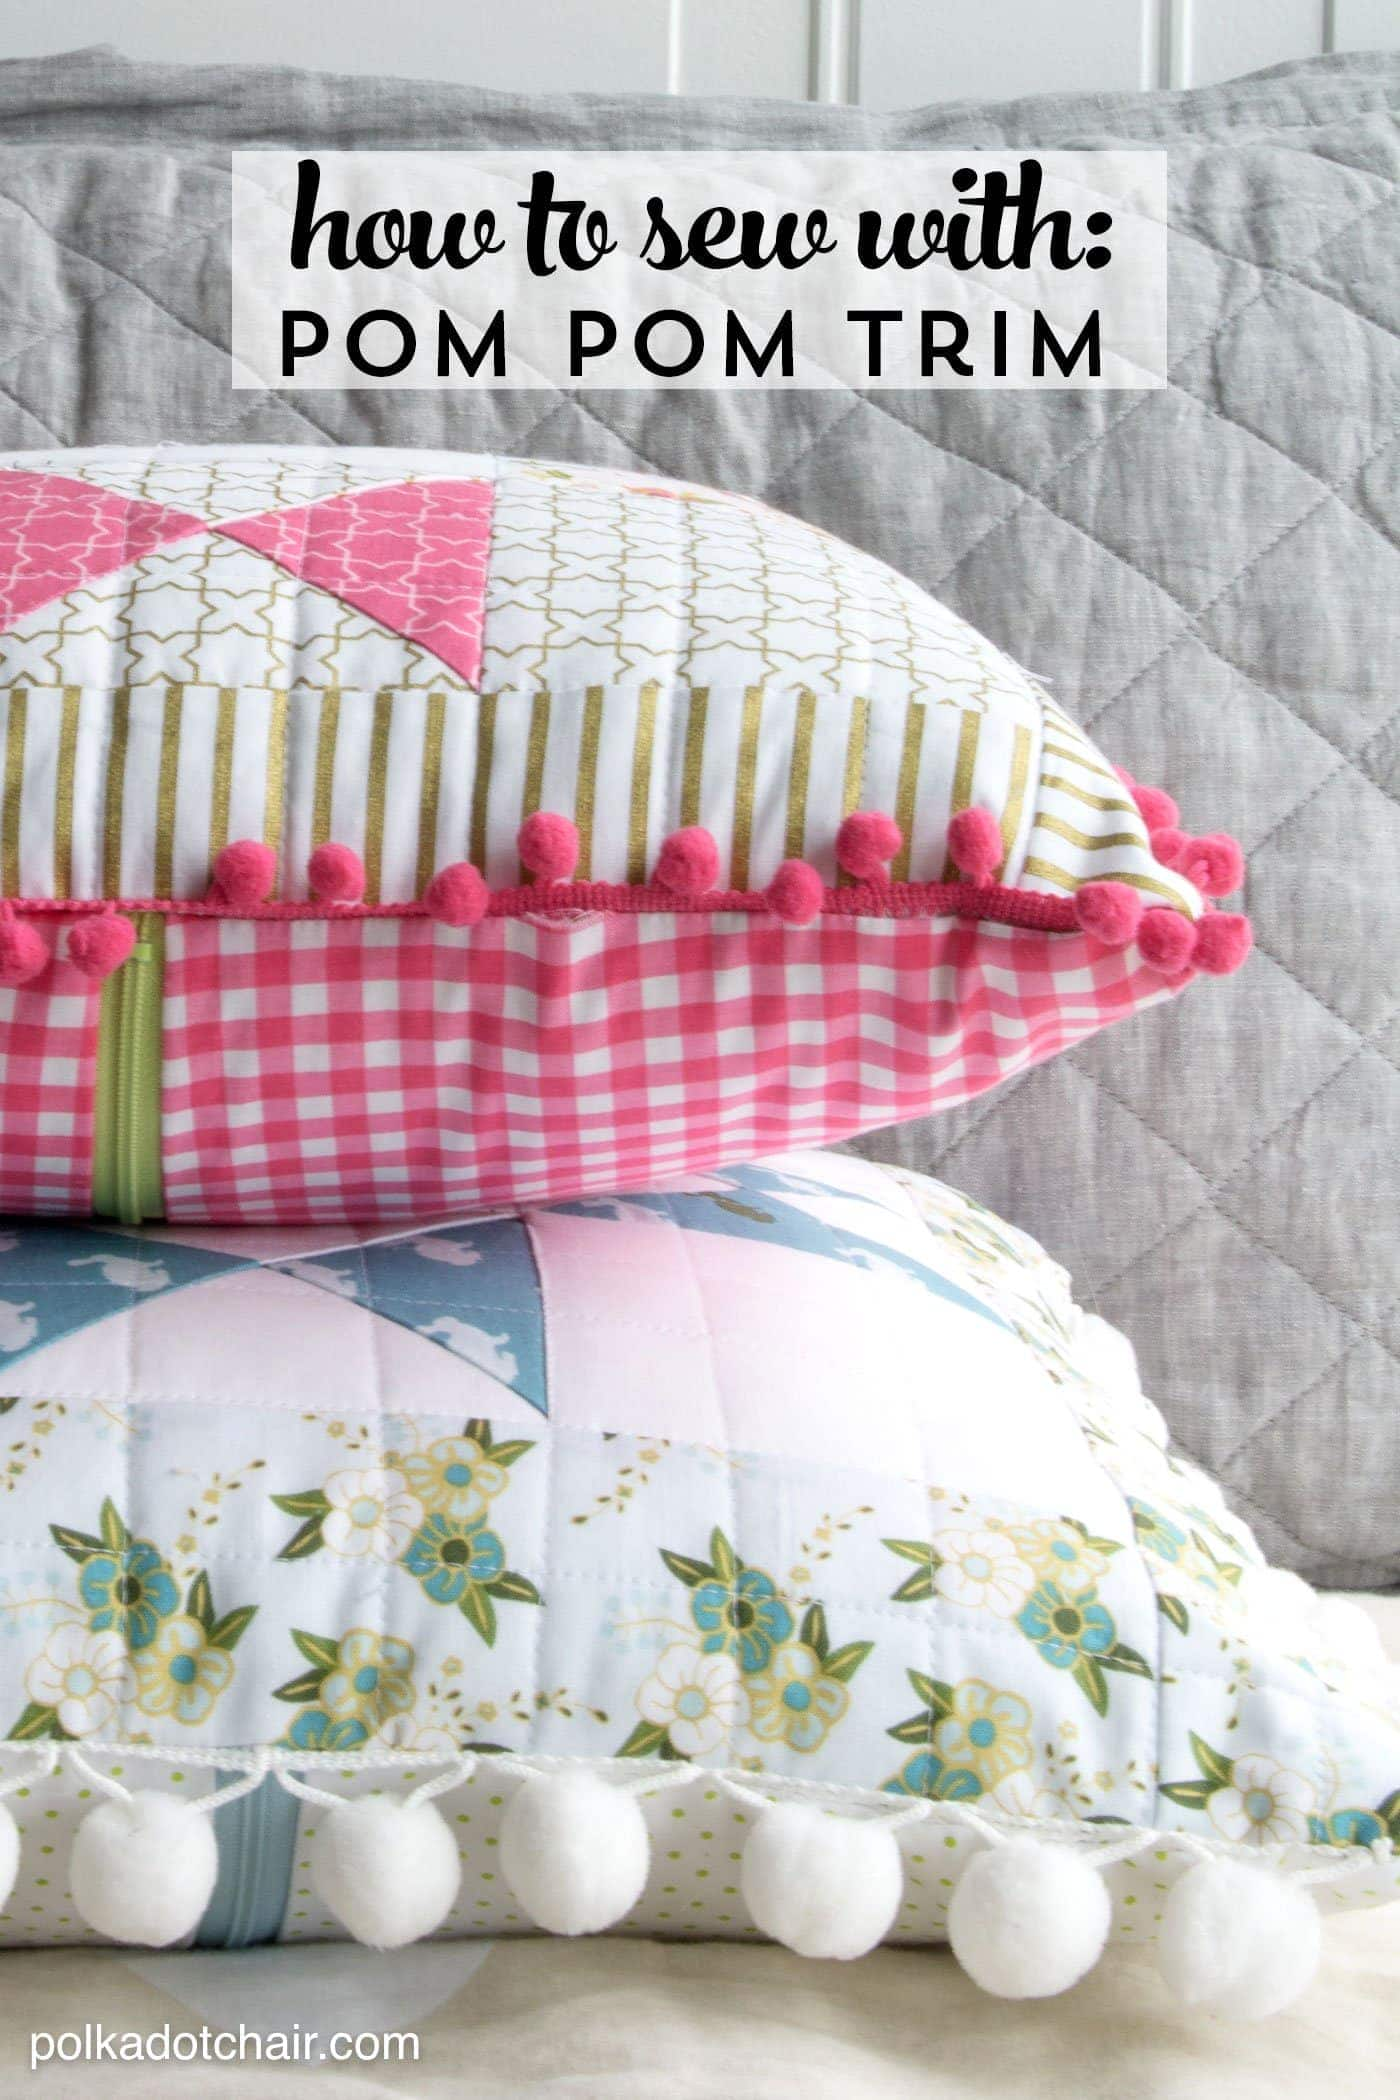 Tips and tricks to make it easy for you to learn how to sew pom pom trim or fringe. Like how to add pom pom fringe to a pillow